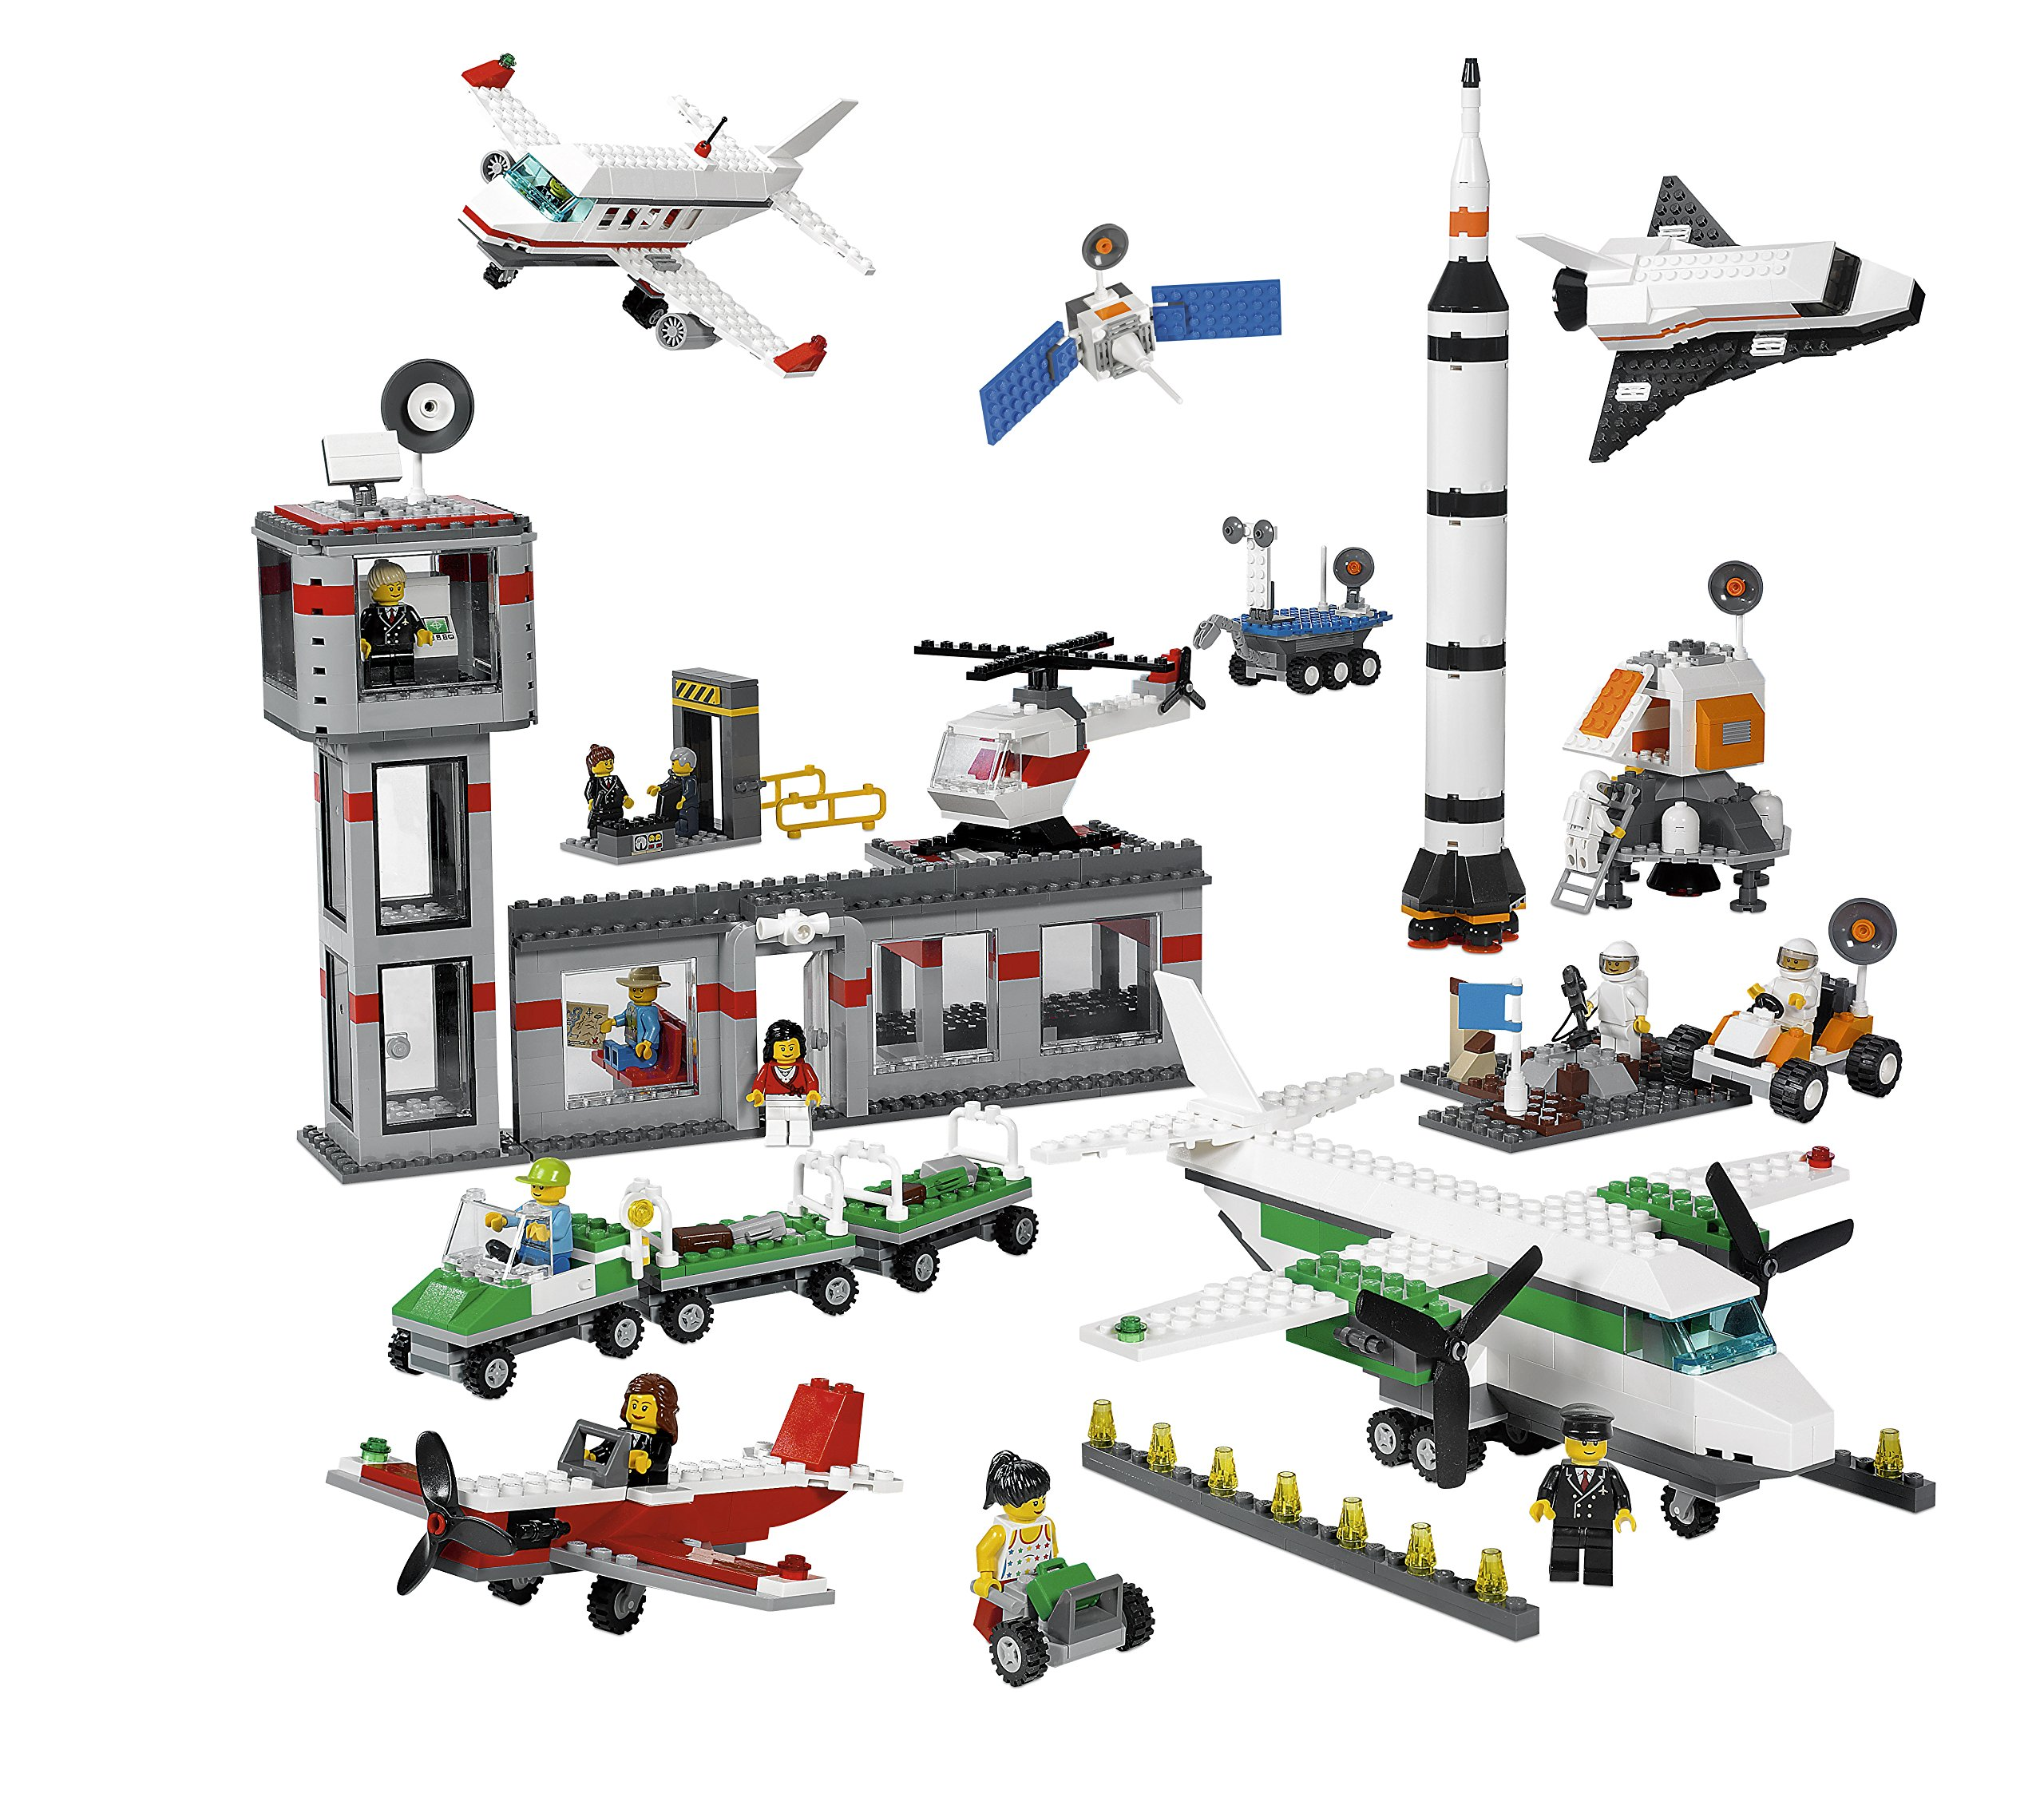 Lego City Airport Passenger Terminal 60104 Top Deals Lowest Price 3182 Education Space And Set